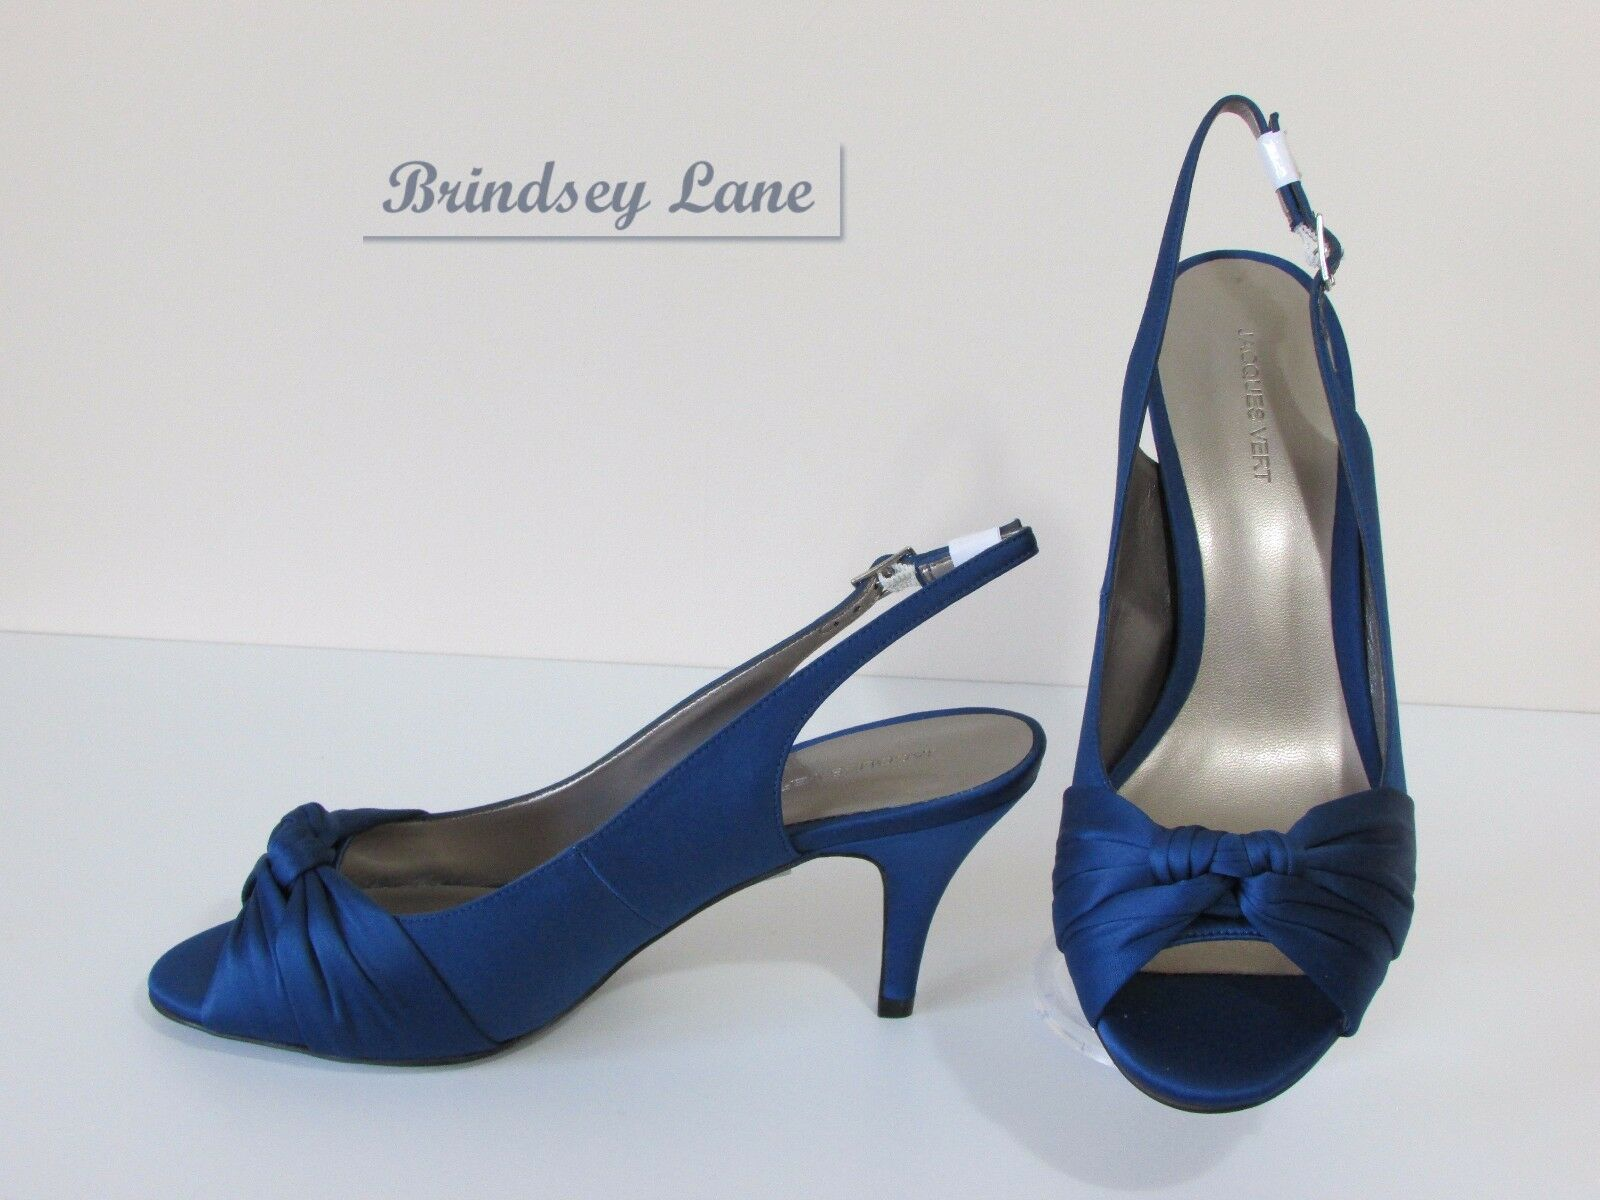 New Jacques Vert French Blau Schuhes & Bag  Knot  Detail  6/39   Knot      RR2 750274